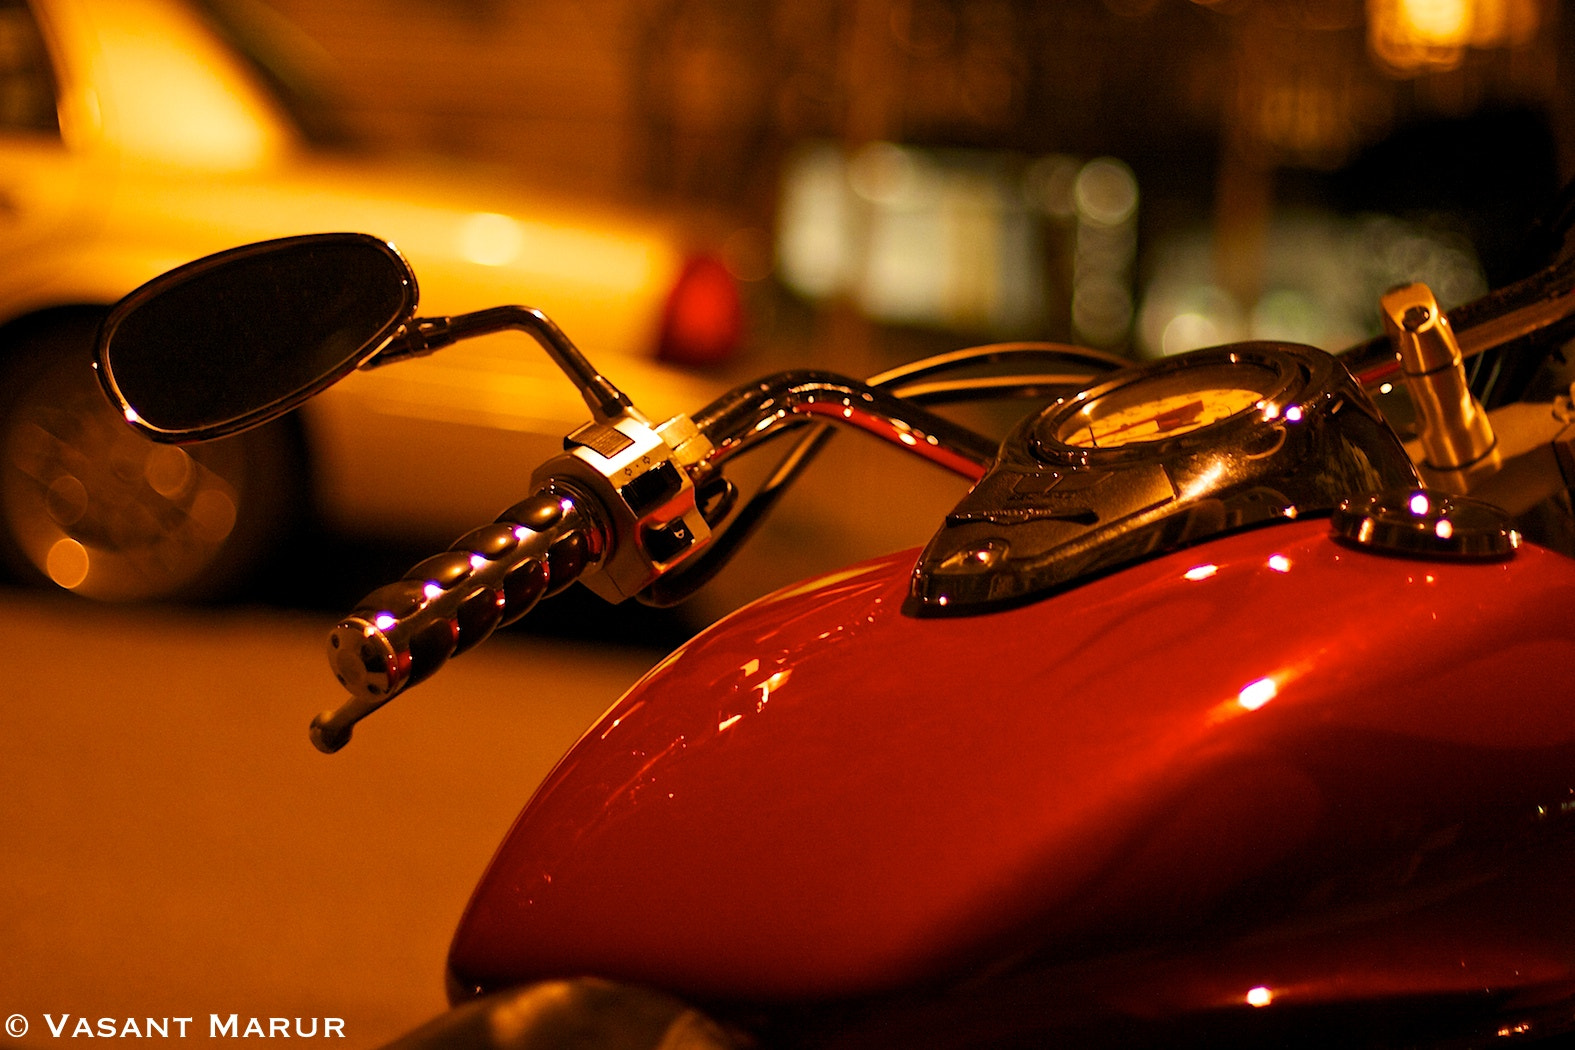 Photograph The Red Motorbike by Vasant Marur on 500px